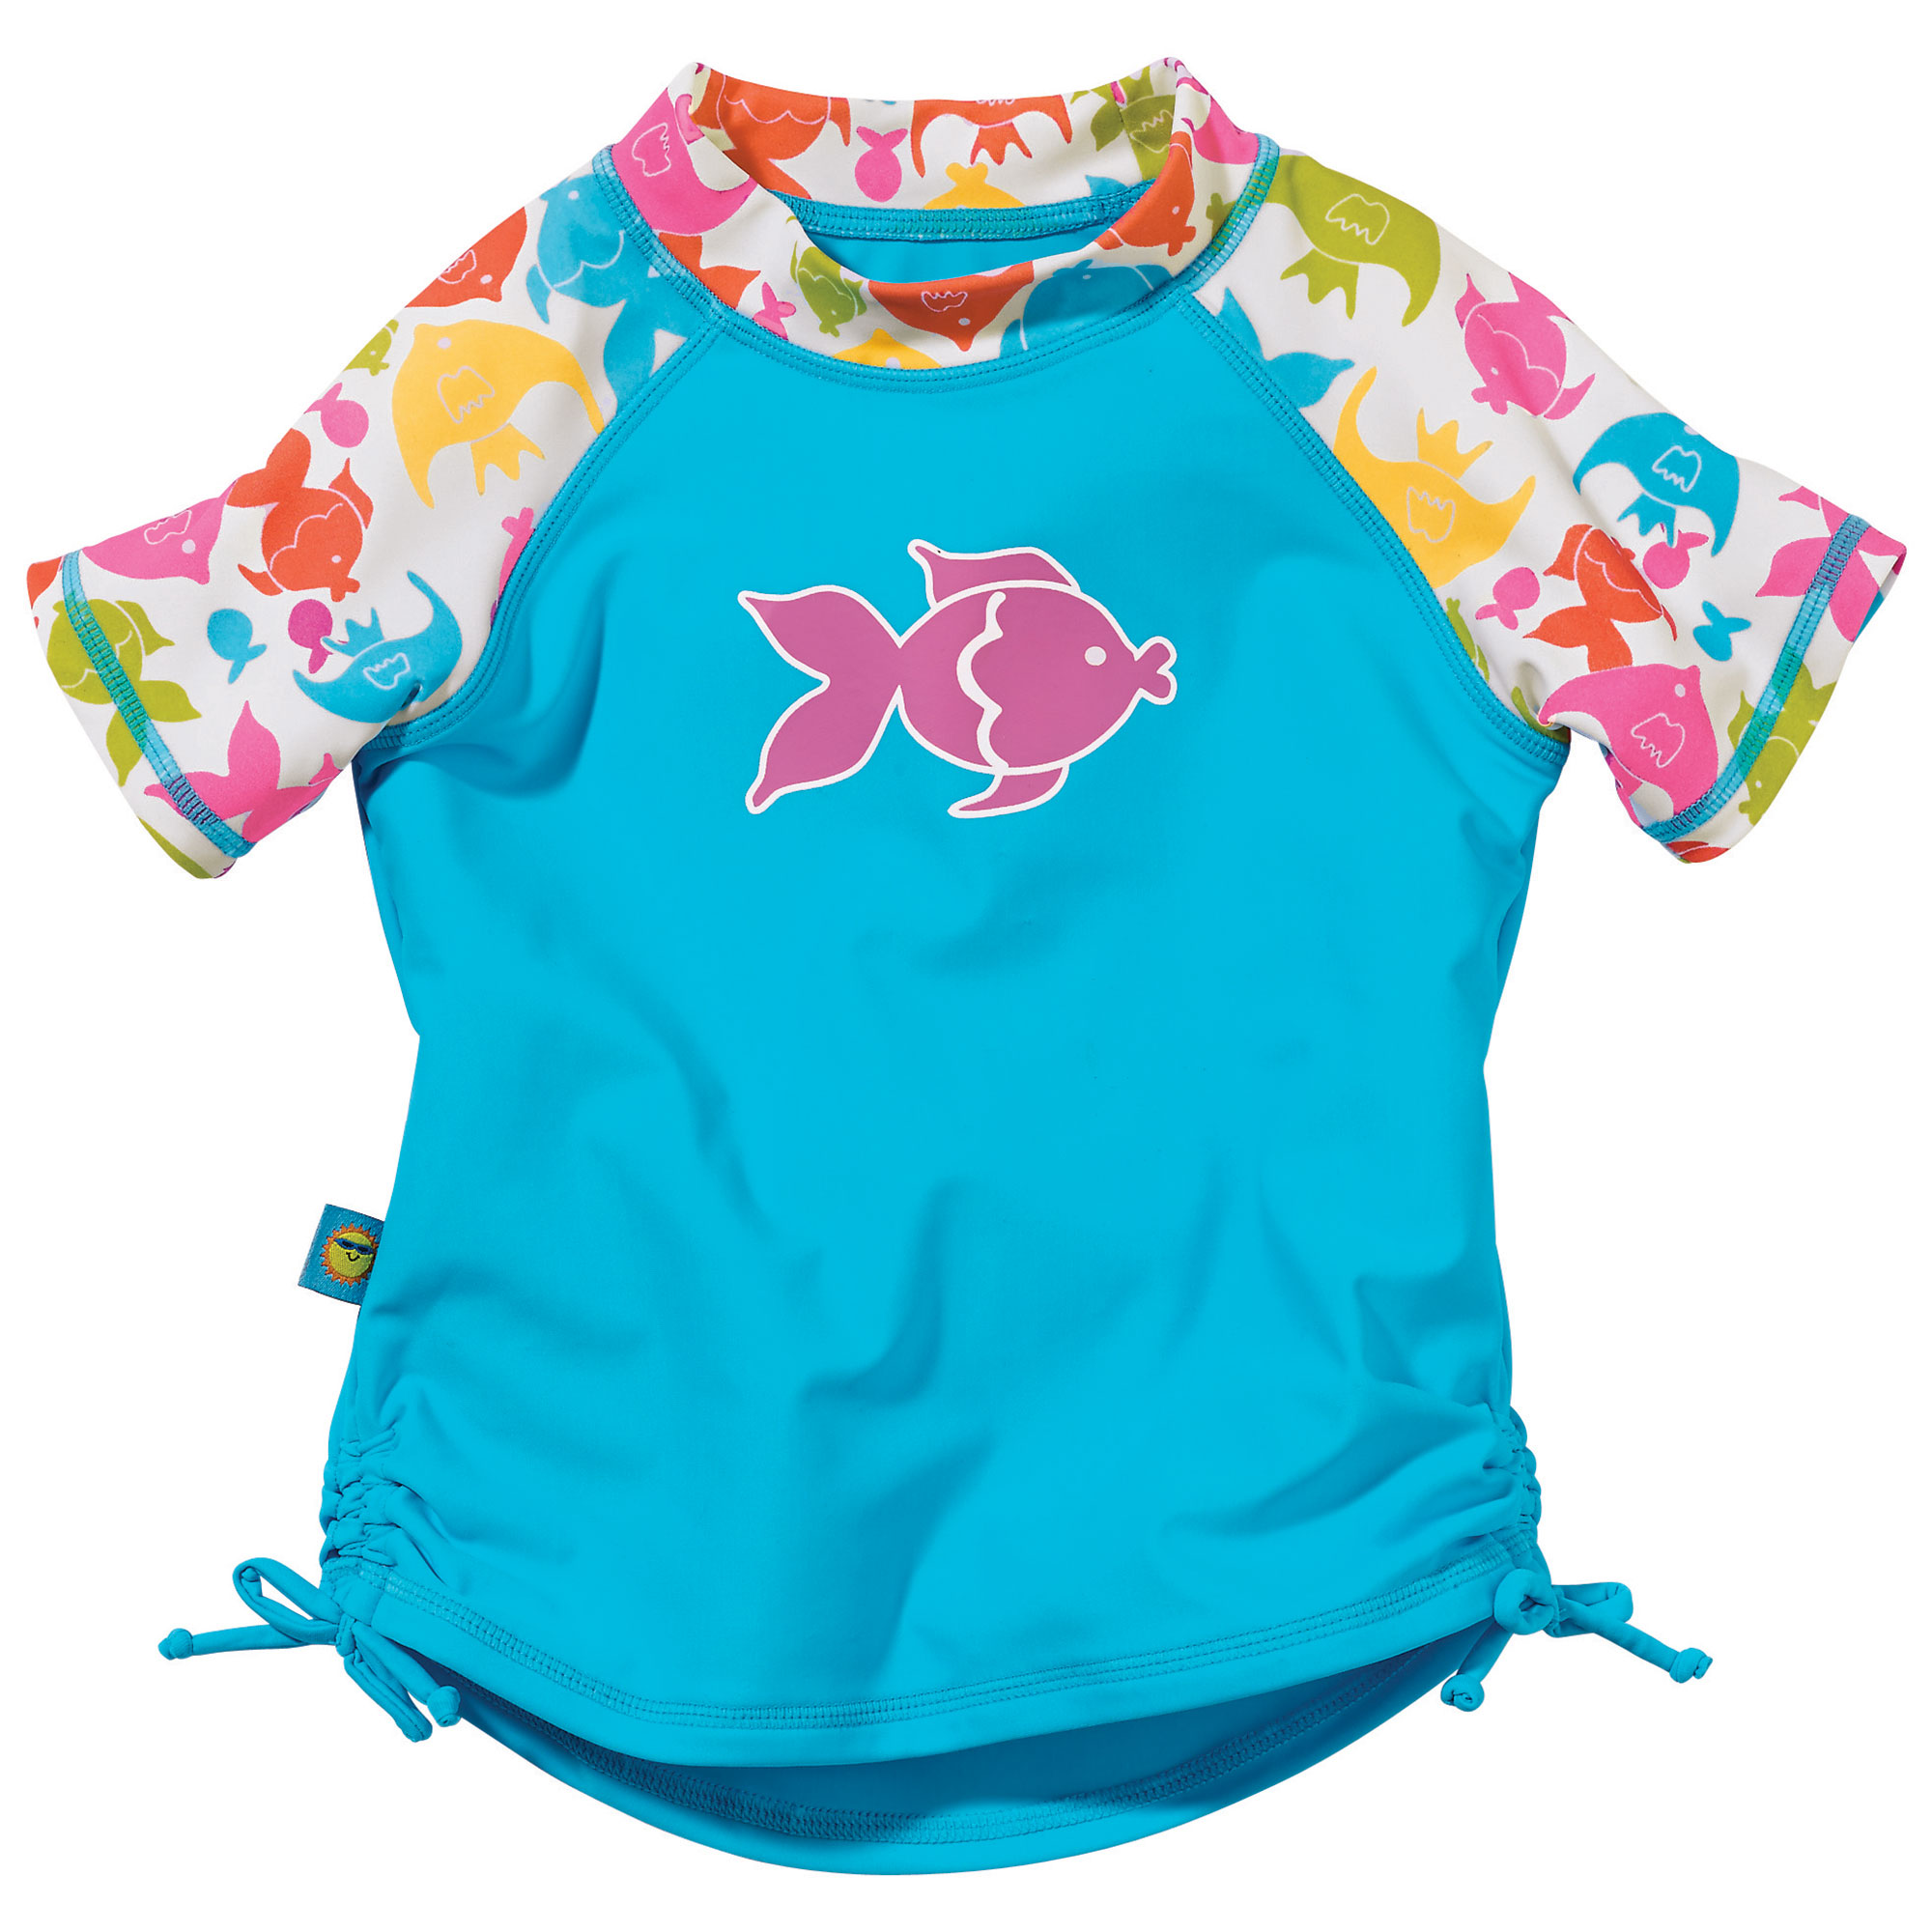 Sun Smarties Baby Girl Rashguard - Blue Tropical Fish Design - UPF 50+ Short Sleeve Sealife Theme